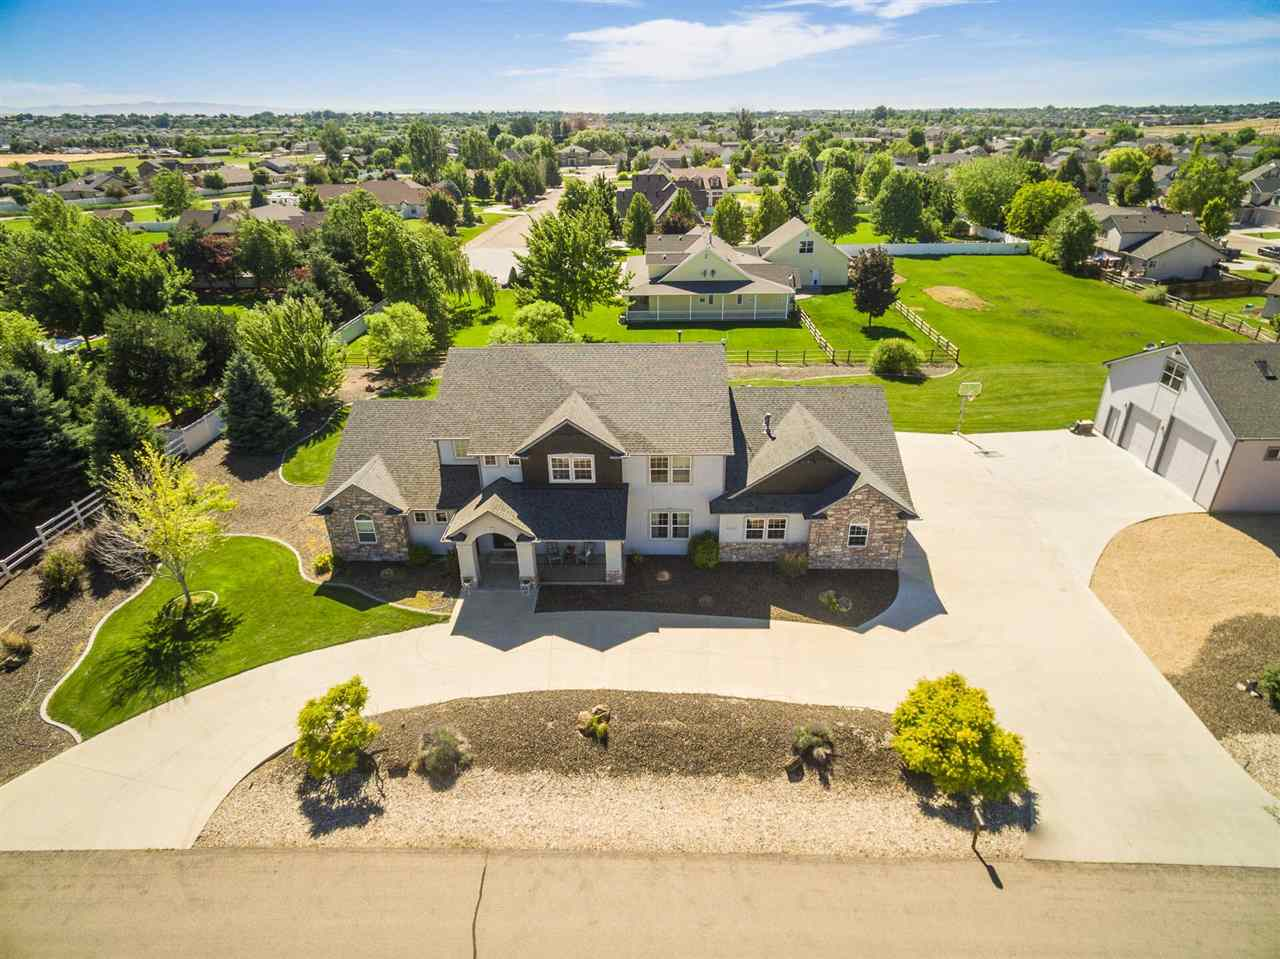 6647 S Star Struck Ave, Boise, ID 83709